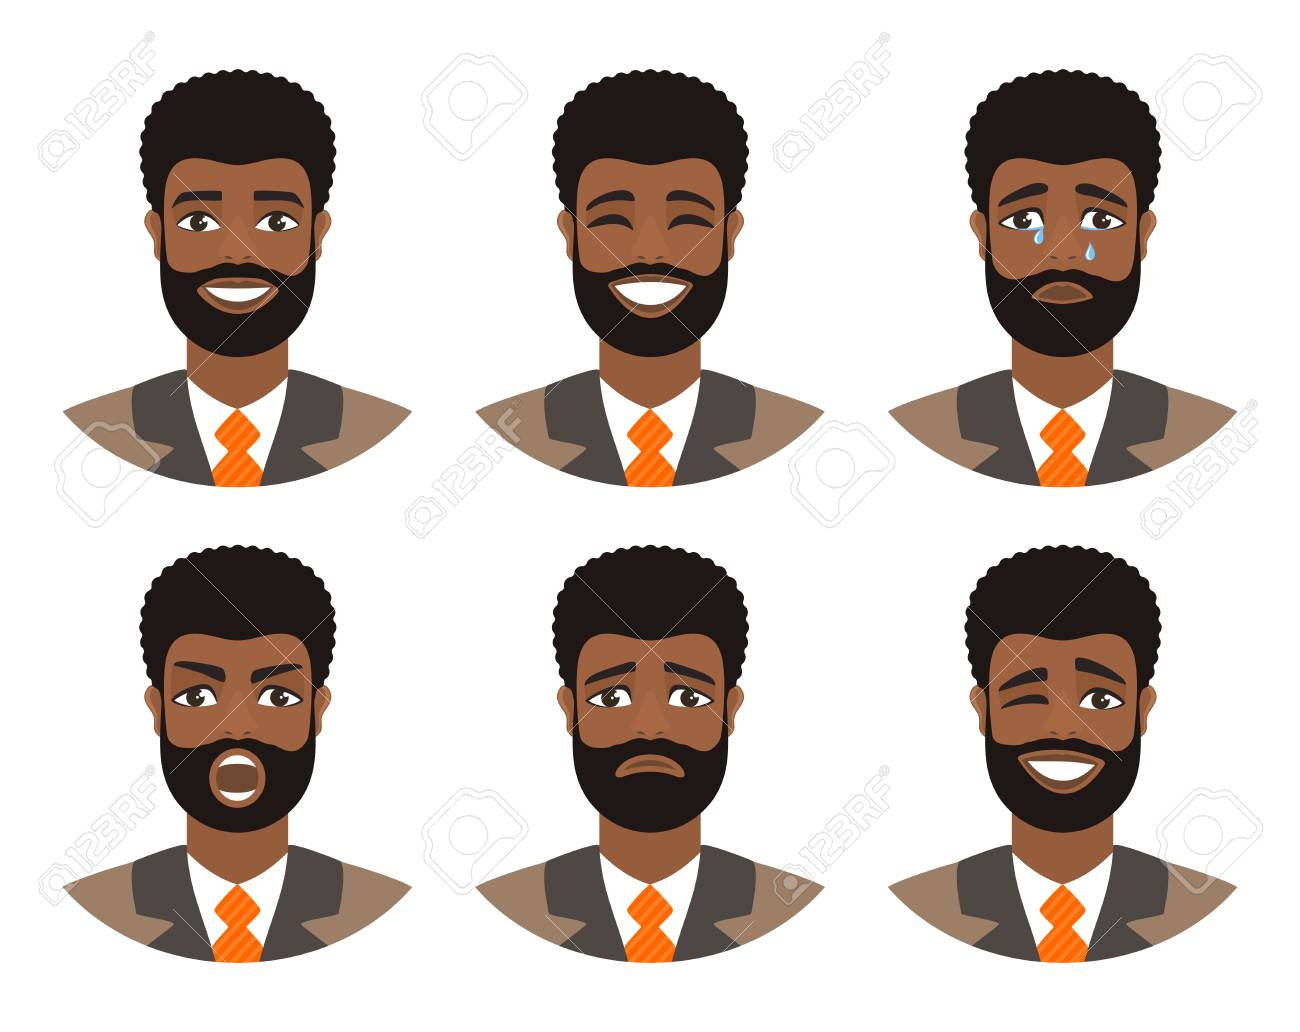 Set of mens avatars expressing various emotions: joy, sadness, laughter, tears, anger, disgust, cry. Businessman with dark curly hair and brown eyes. Cartoon character isolated on a white background. - 119150667